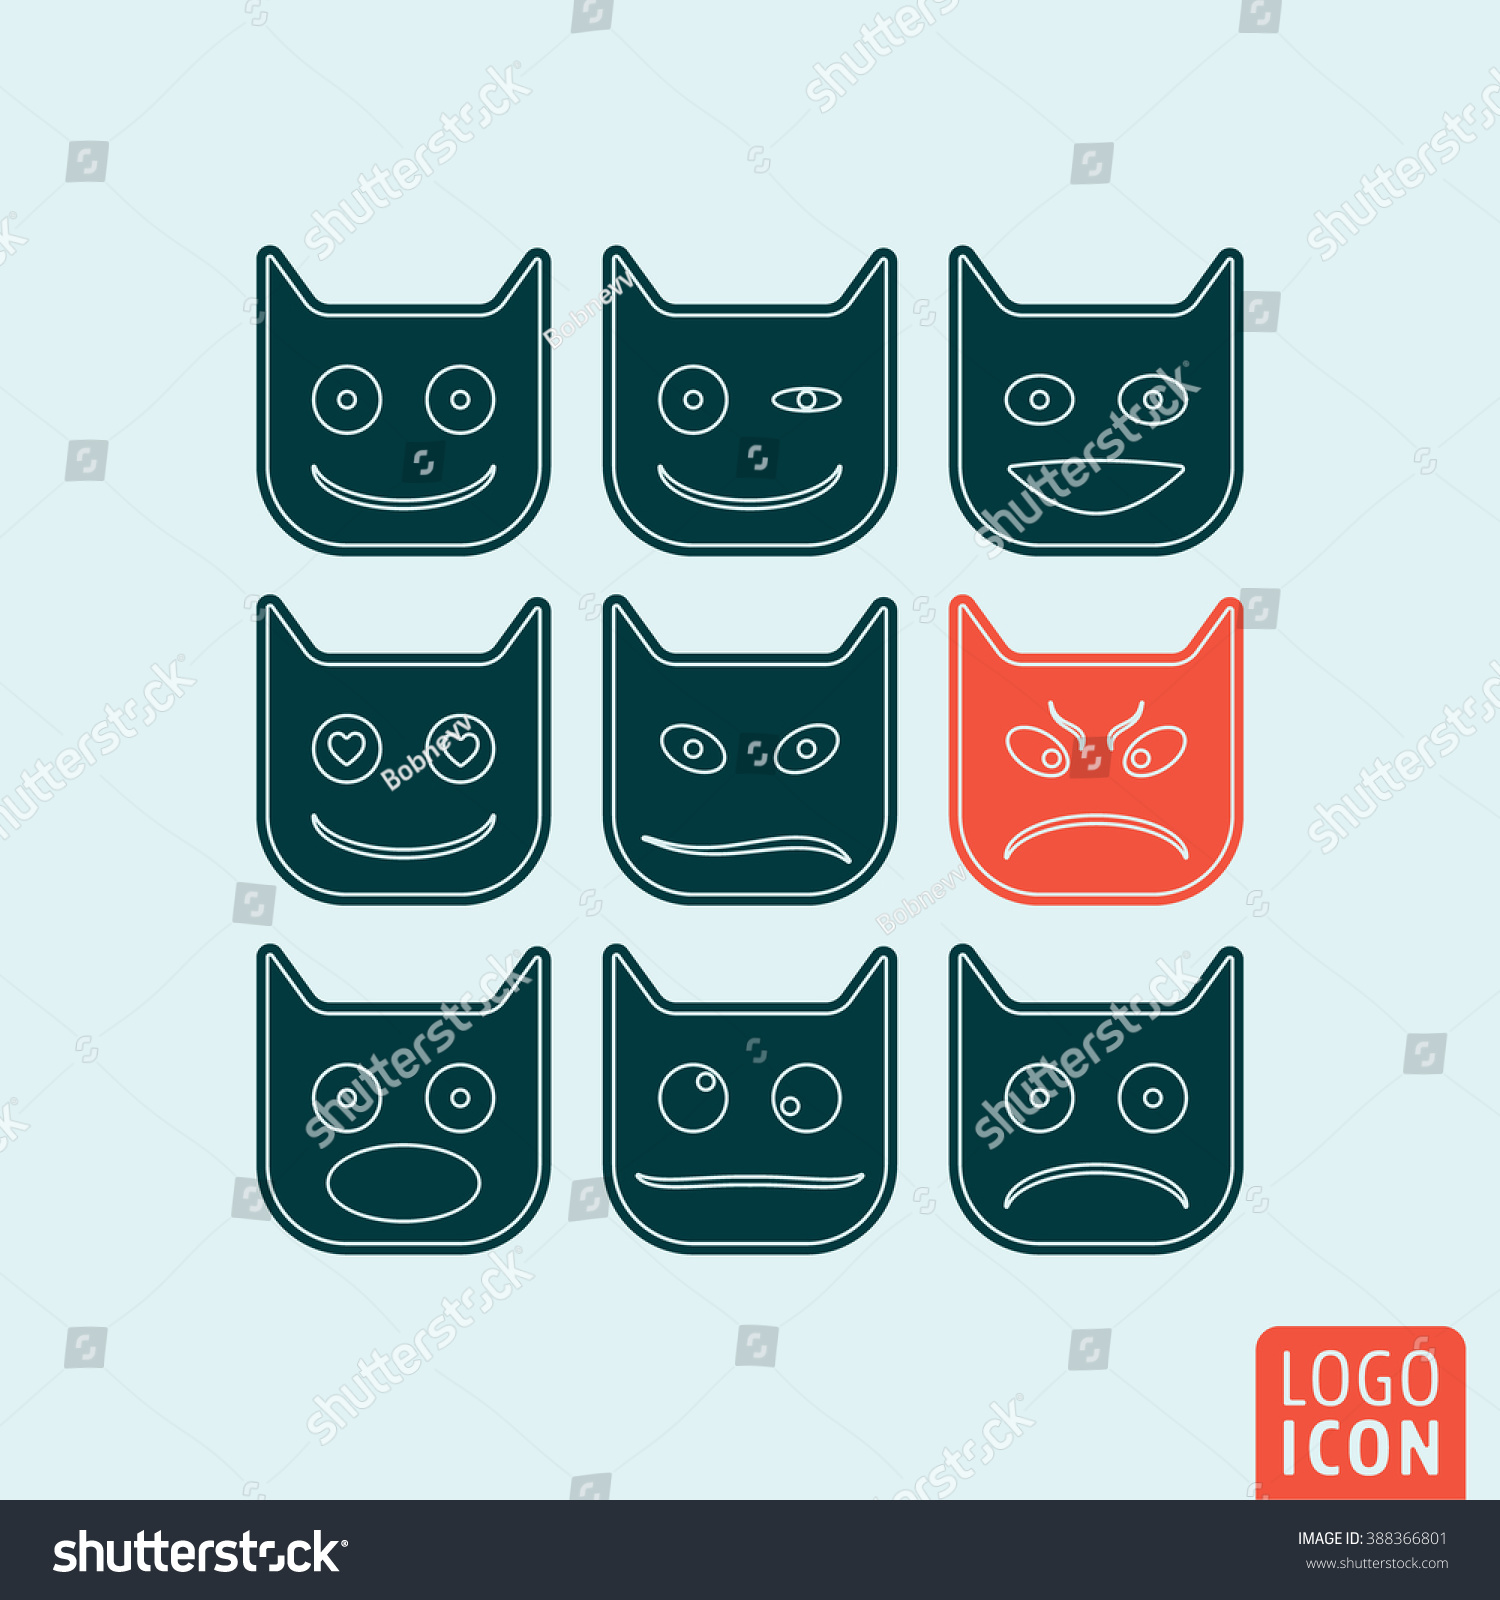 Royalty Free Emoticons Icon Emoticons Symbol Emoji 388366801